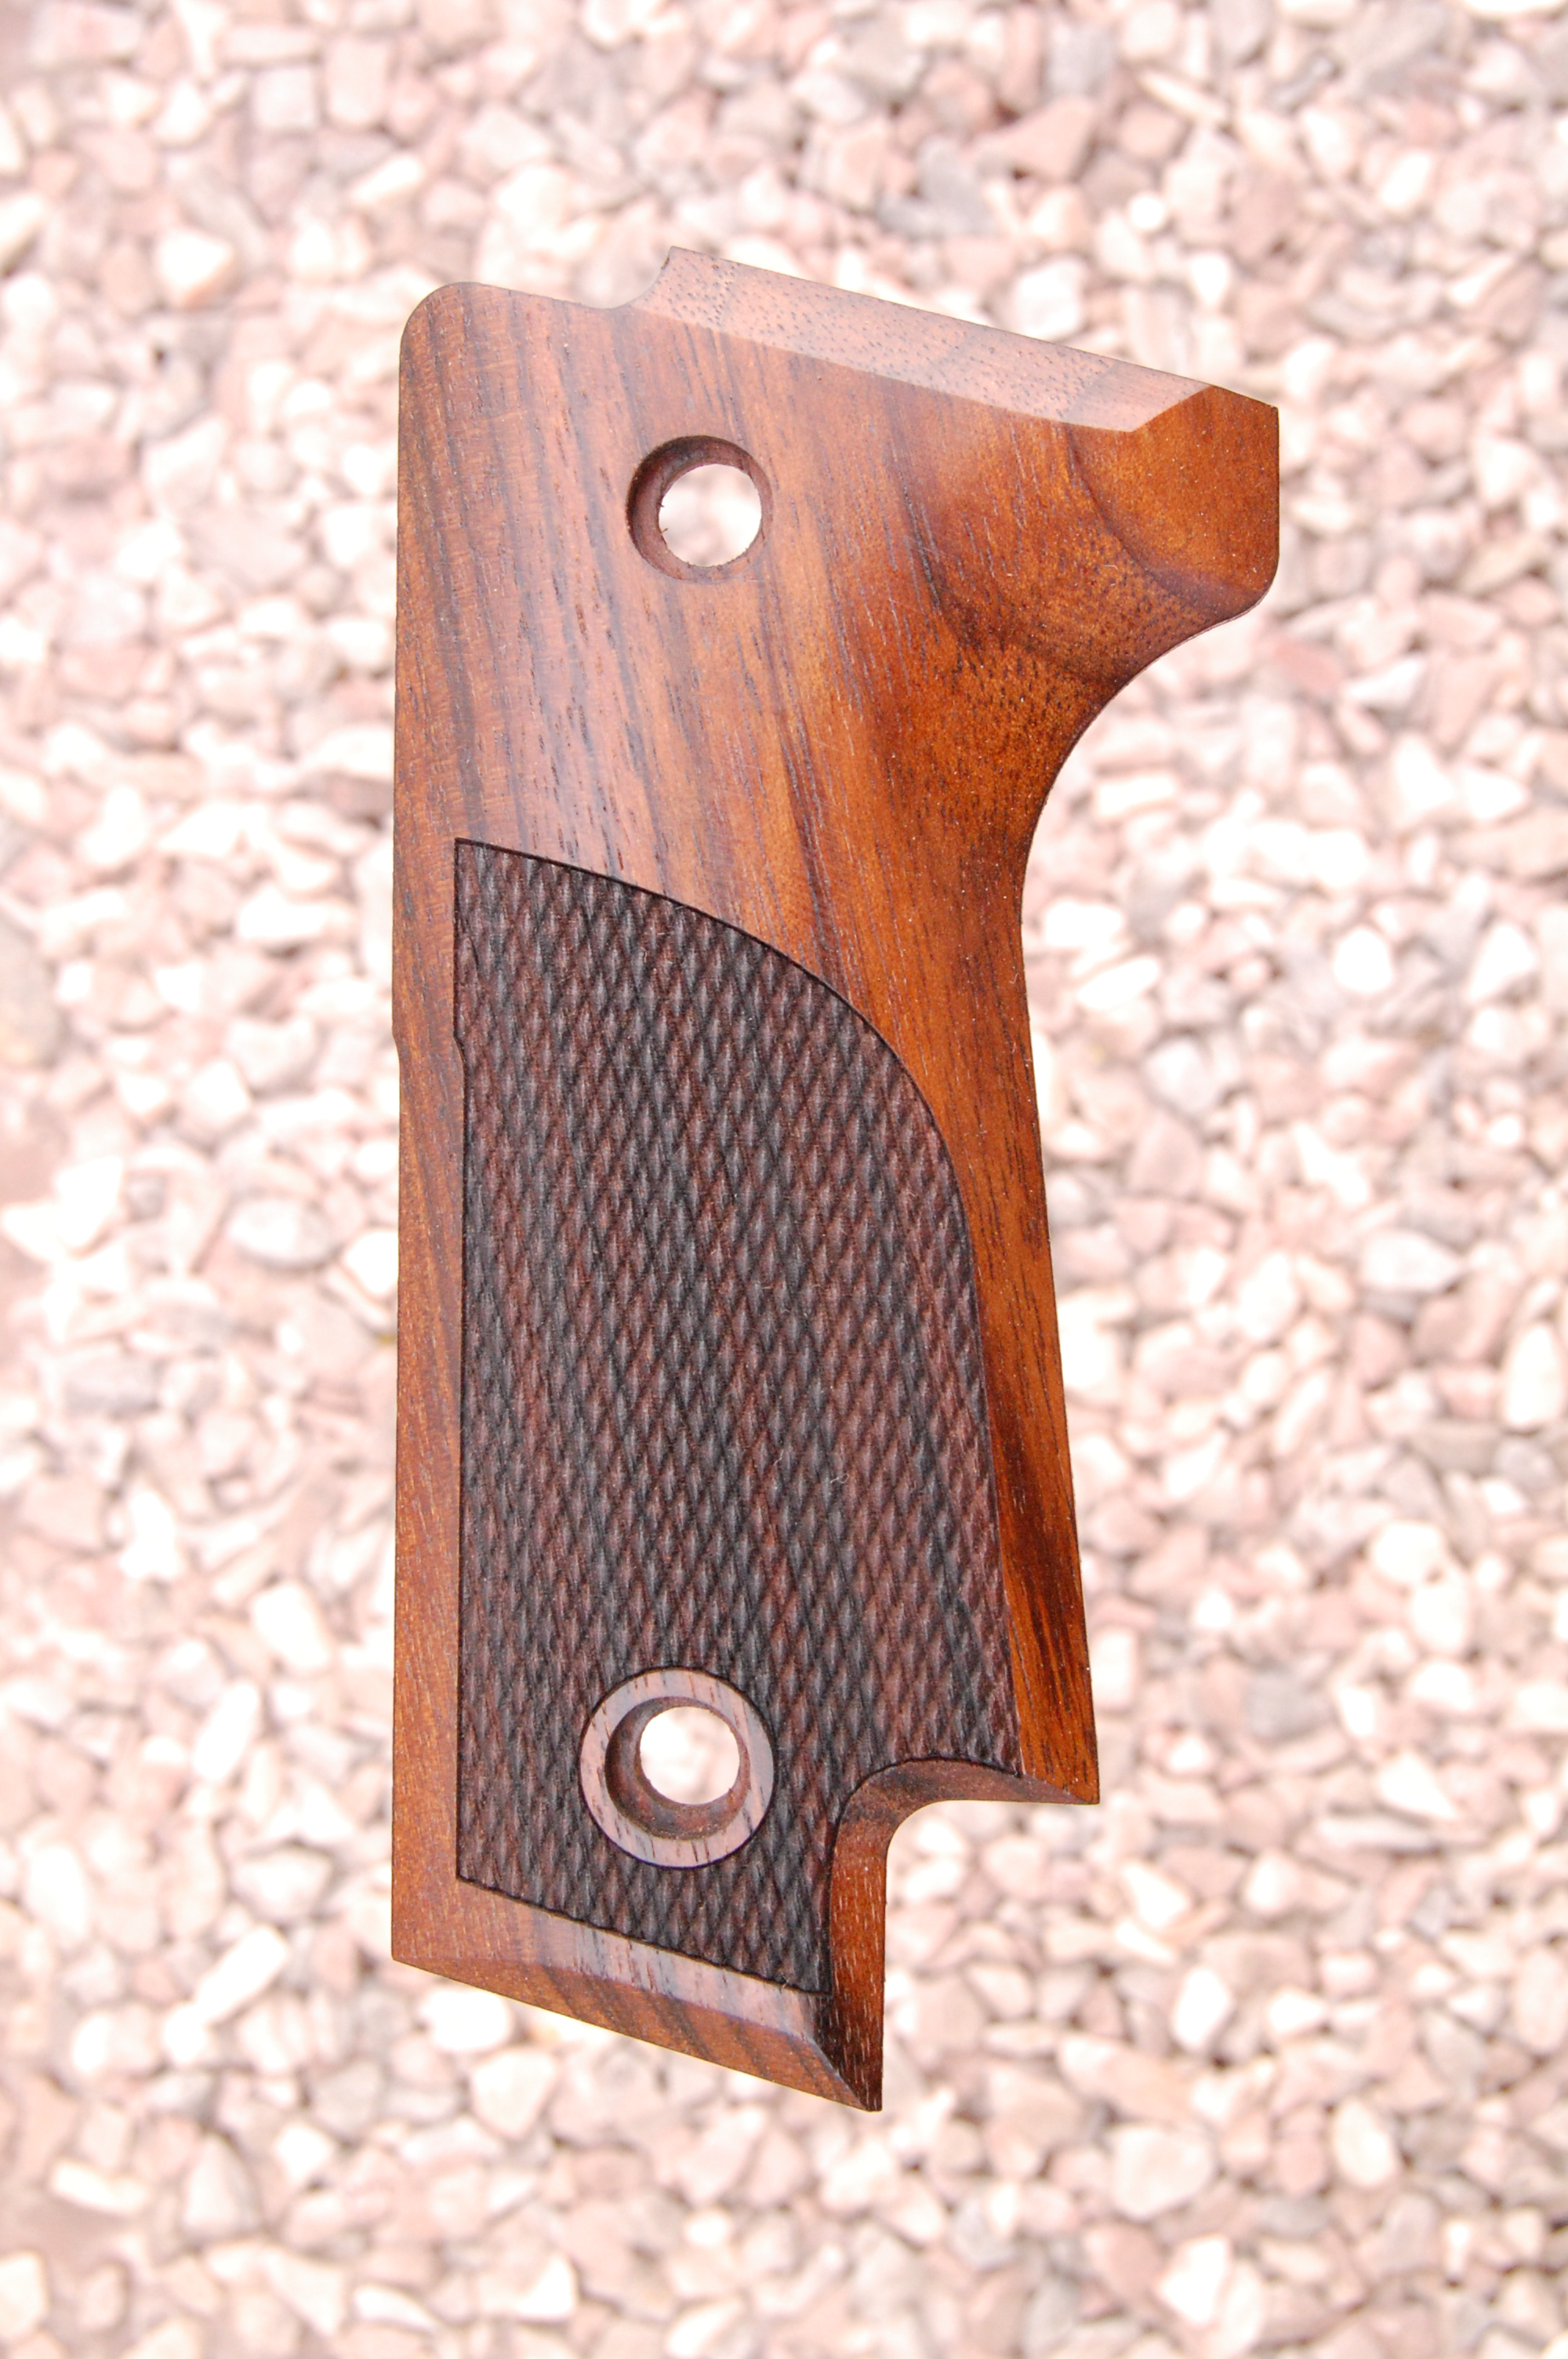 BERETTA 92S grips (partially checkered) - full size